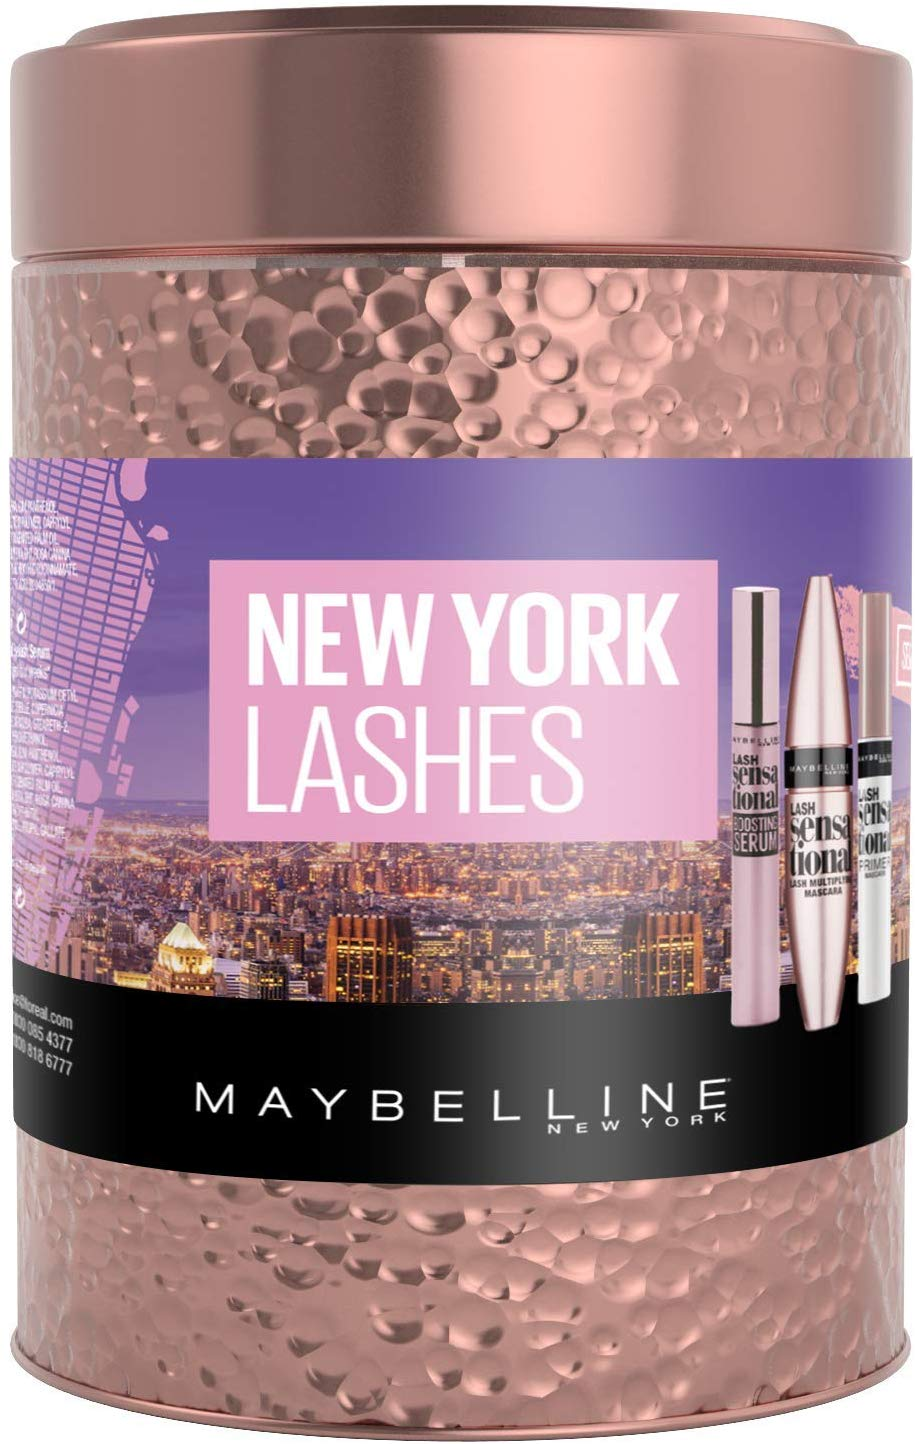 55% off Maybelline New York NYC Lashes Giftset (Mascara, Primer and Lash Serum)